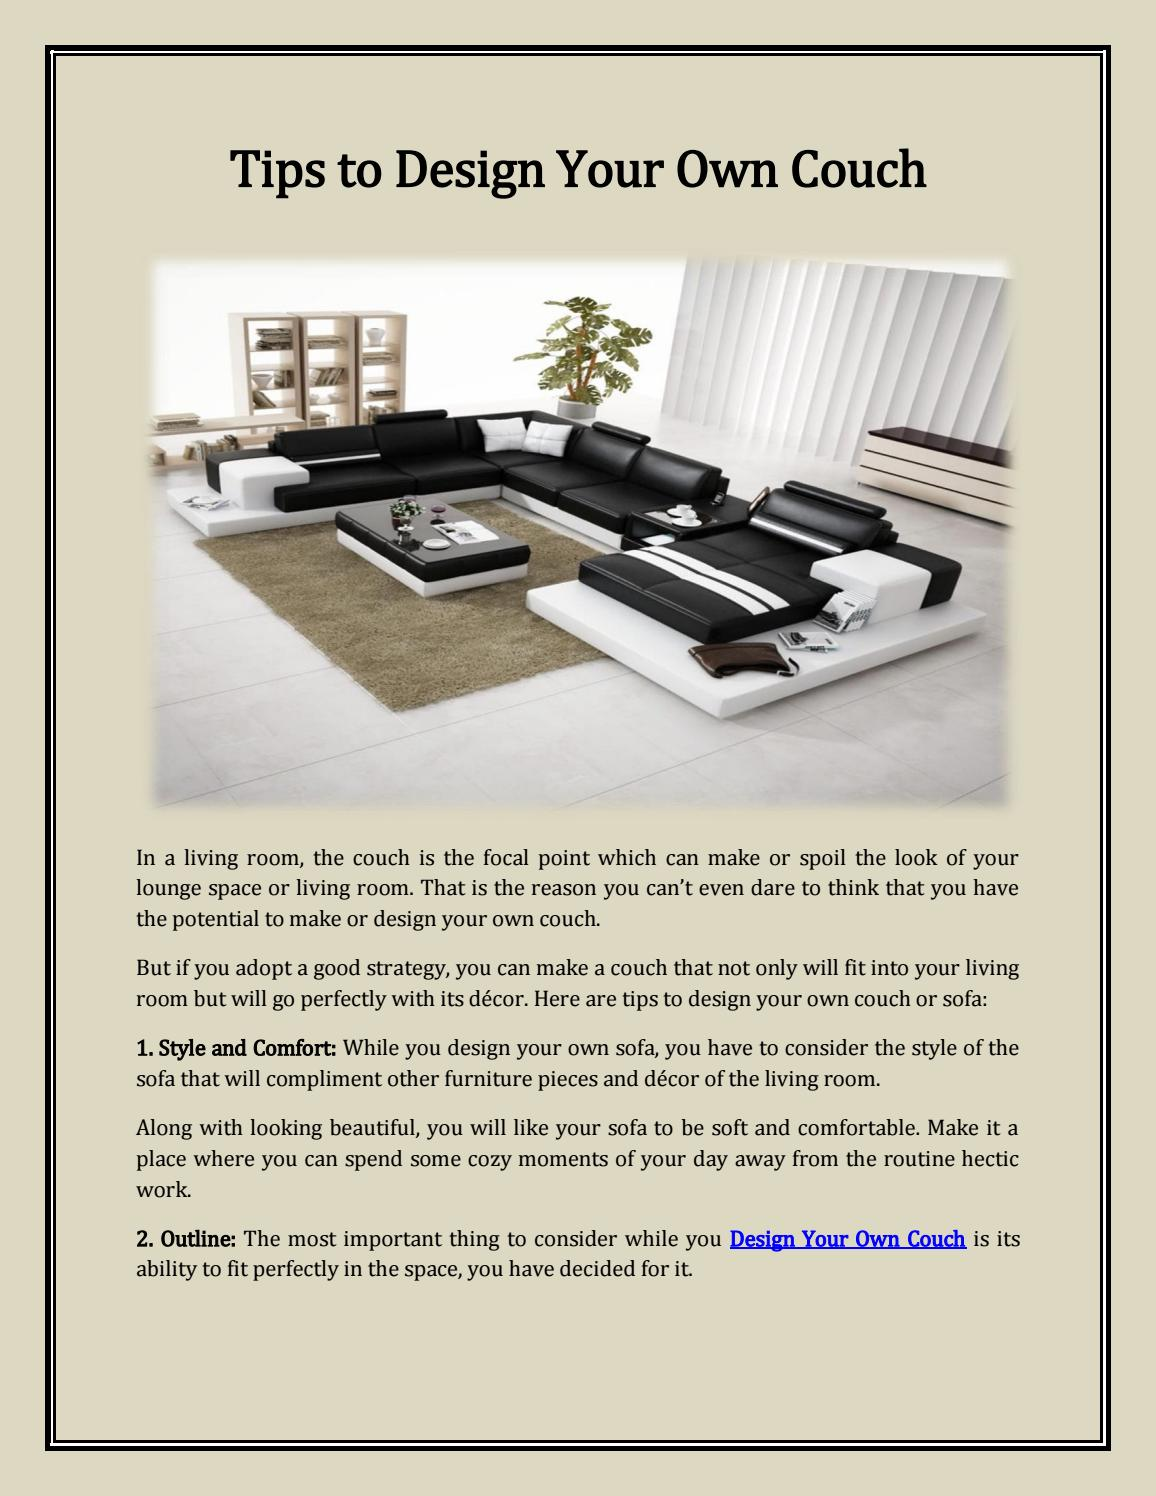 Tips To Design Your Own Couch By Sofally - Issuu